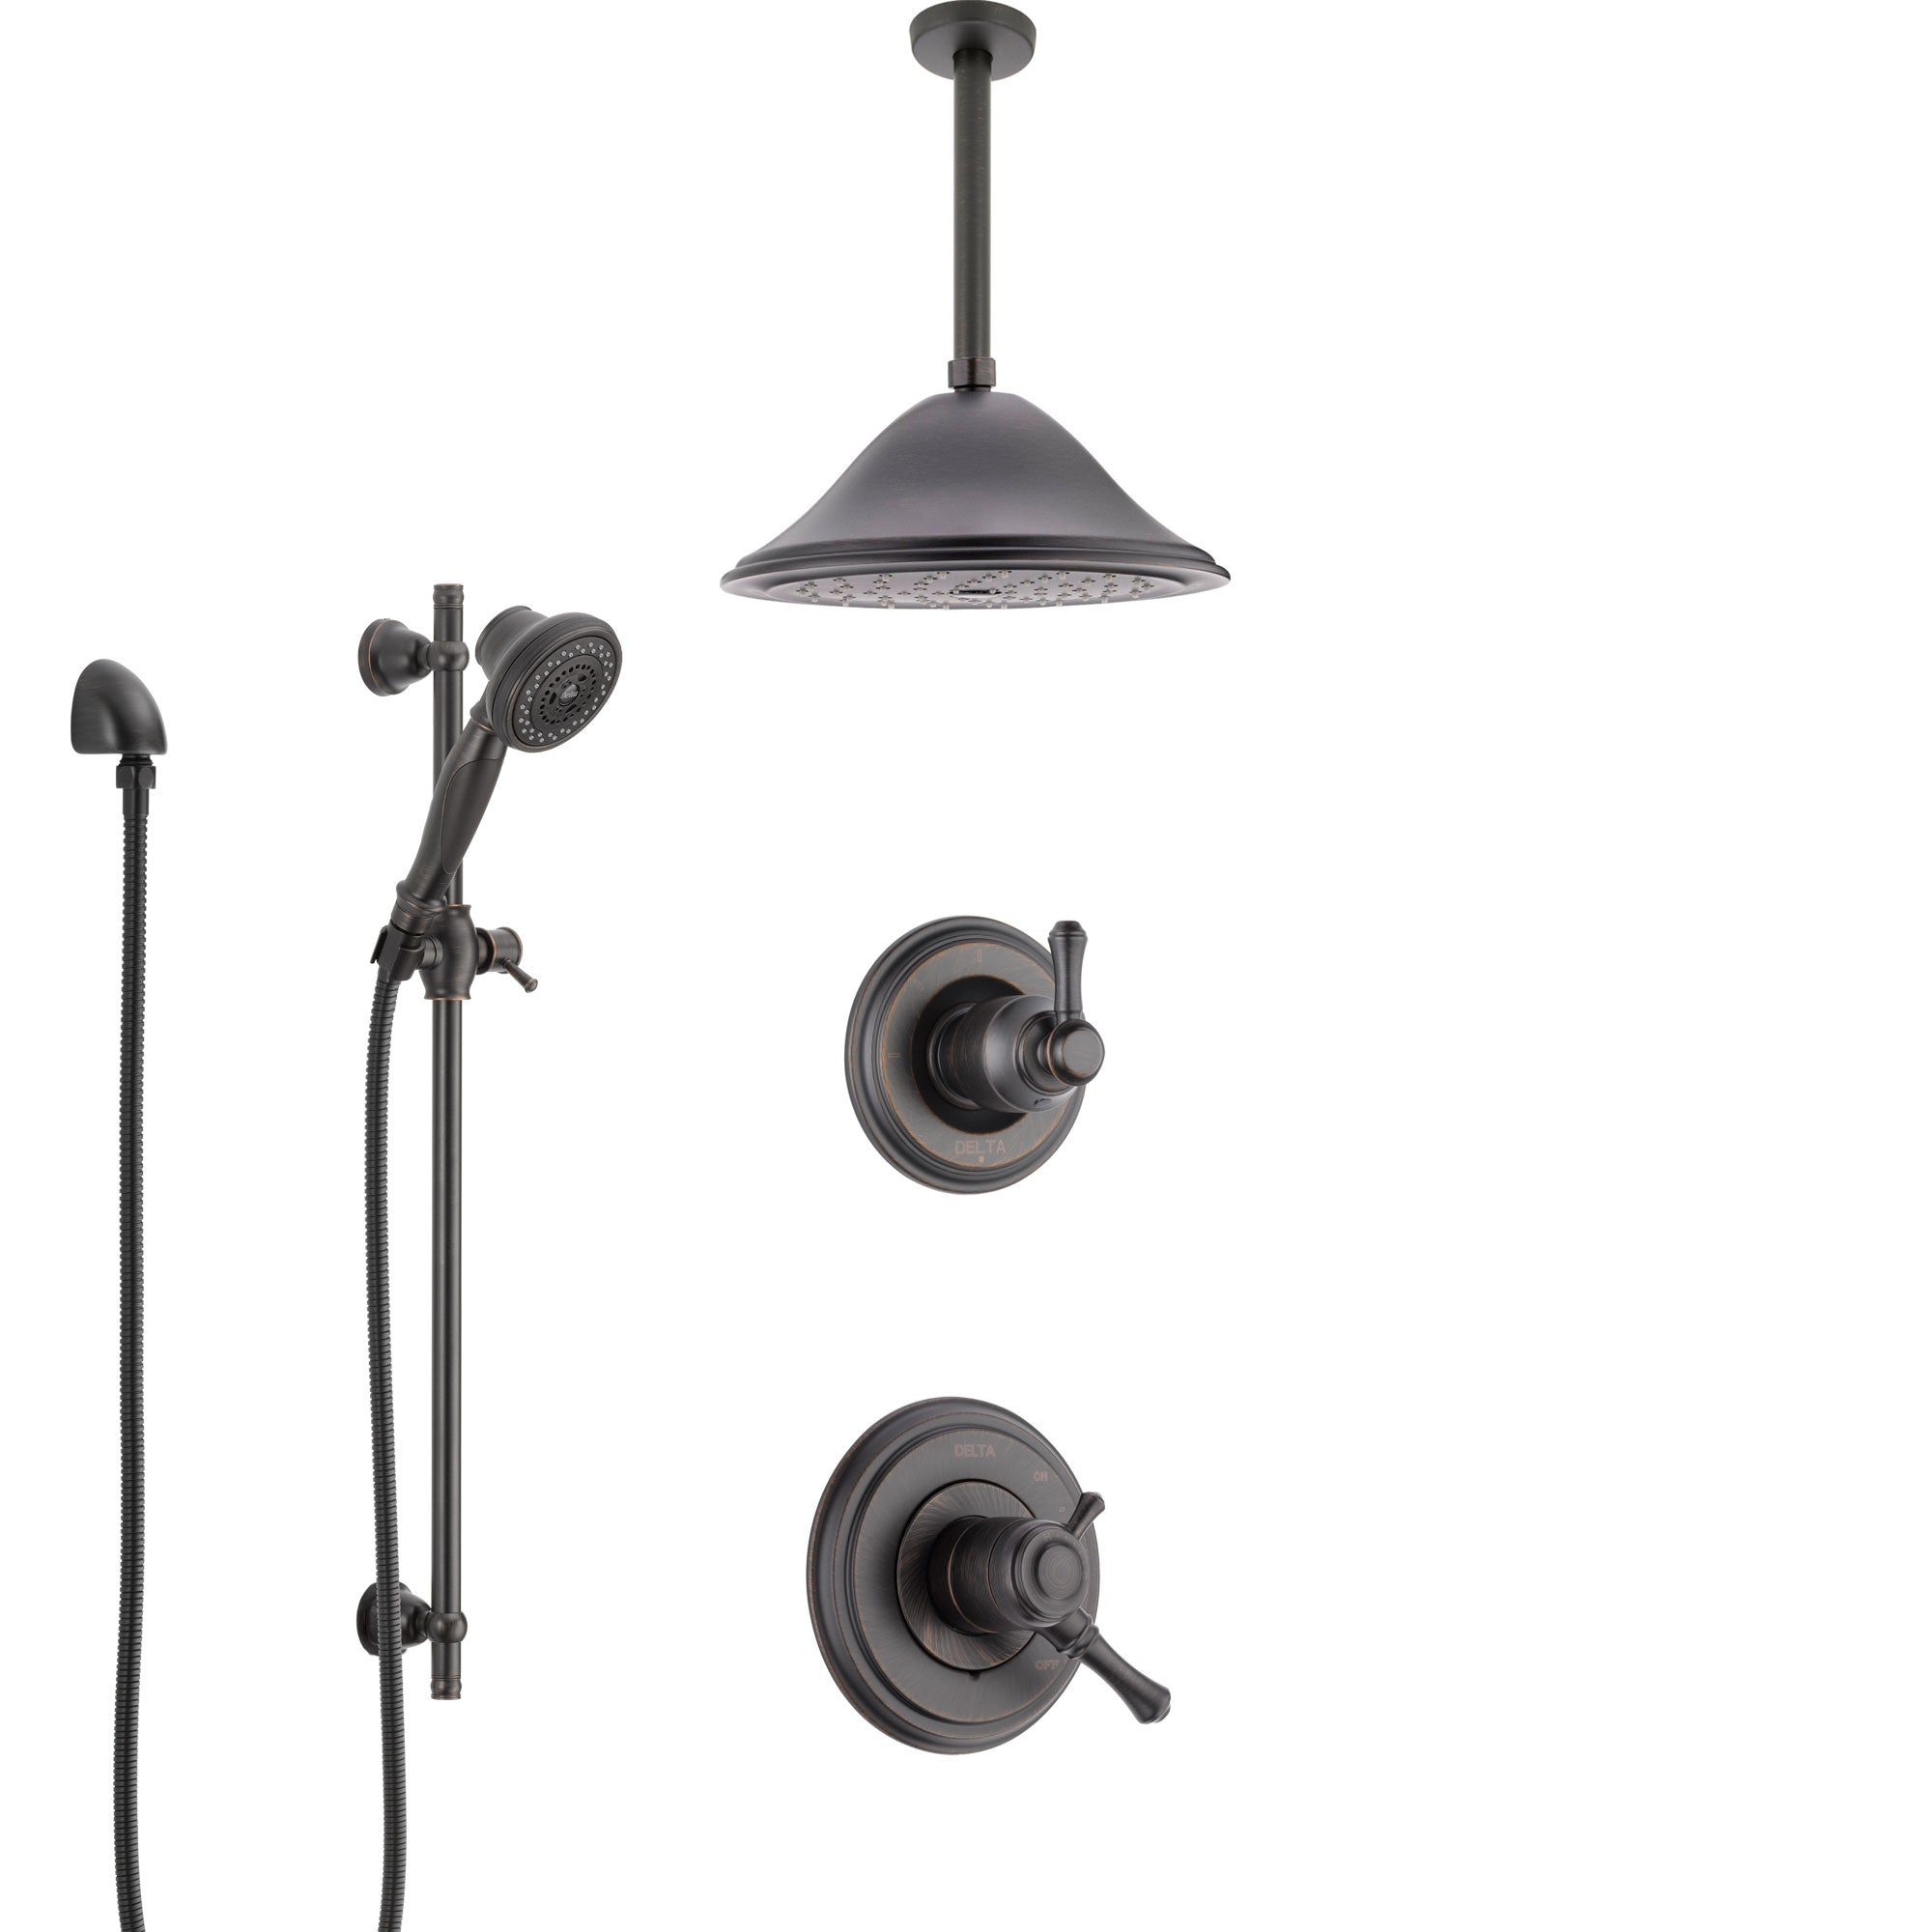 Delta Cassidy Venetian Bronze Shower System with Dual Control Handle, Diverter, Ceiling Mount Showerhead, and Hand Shower with Slidebar SS1797RB4